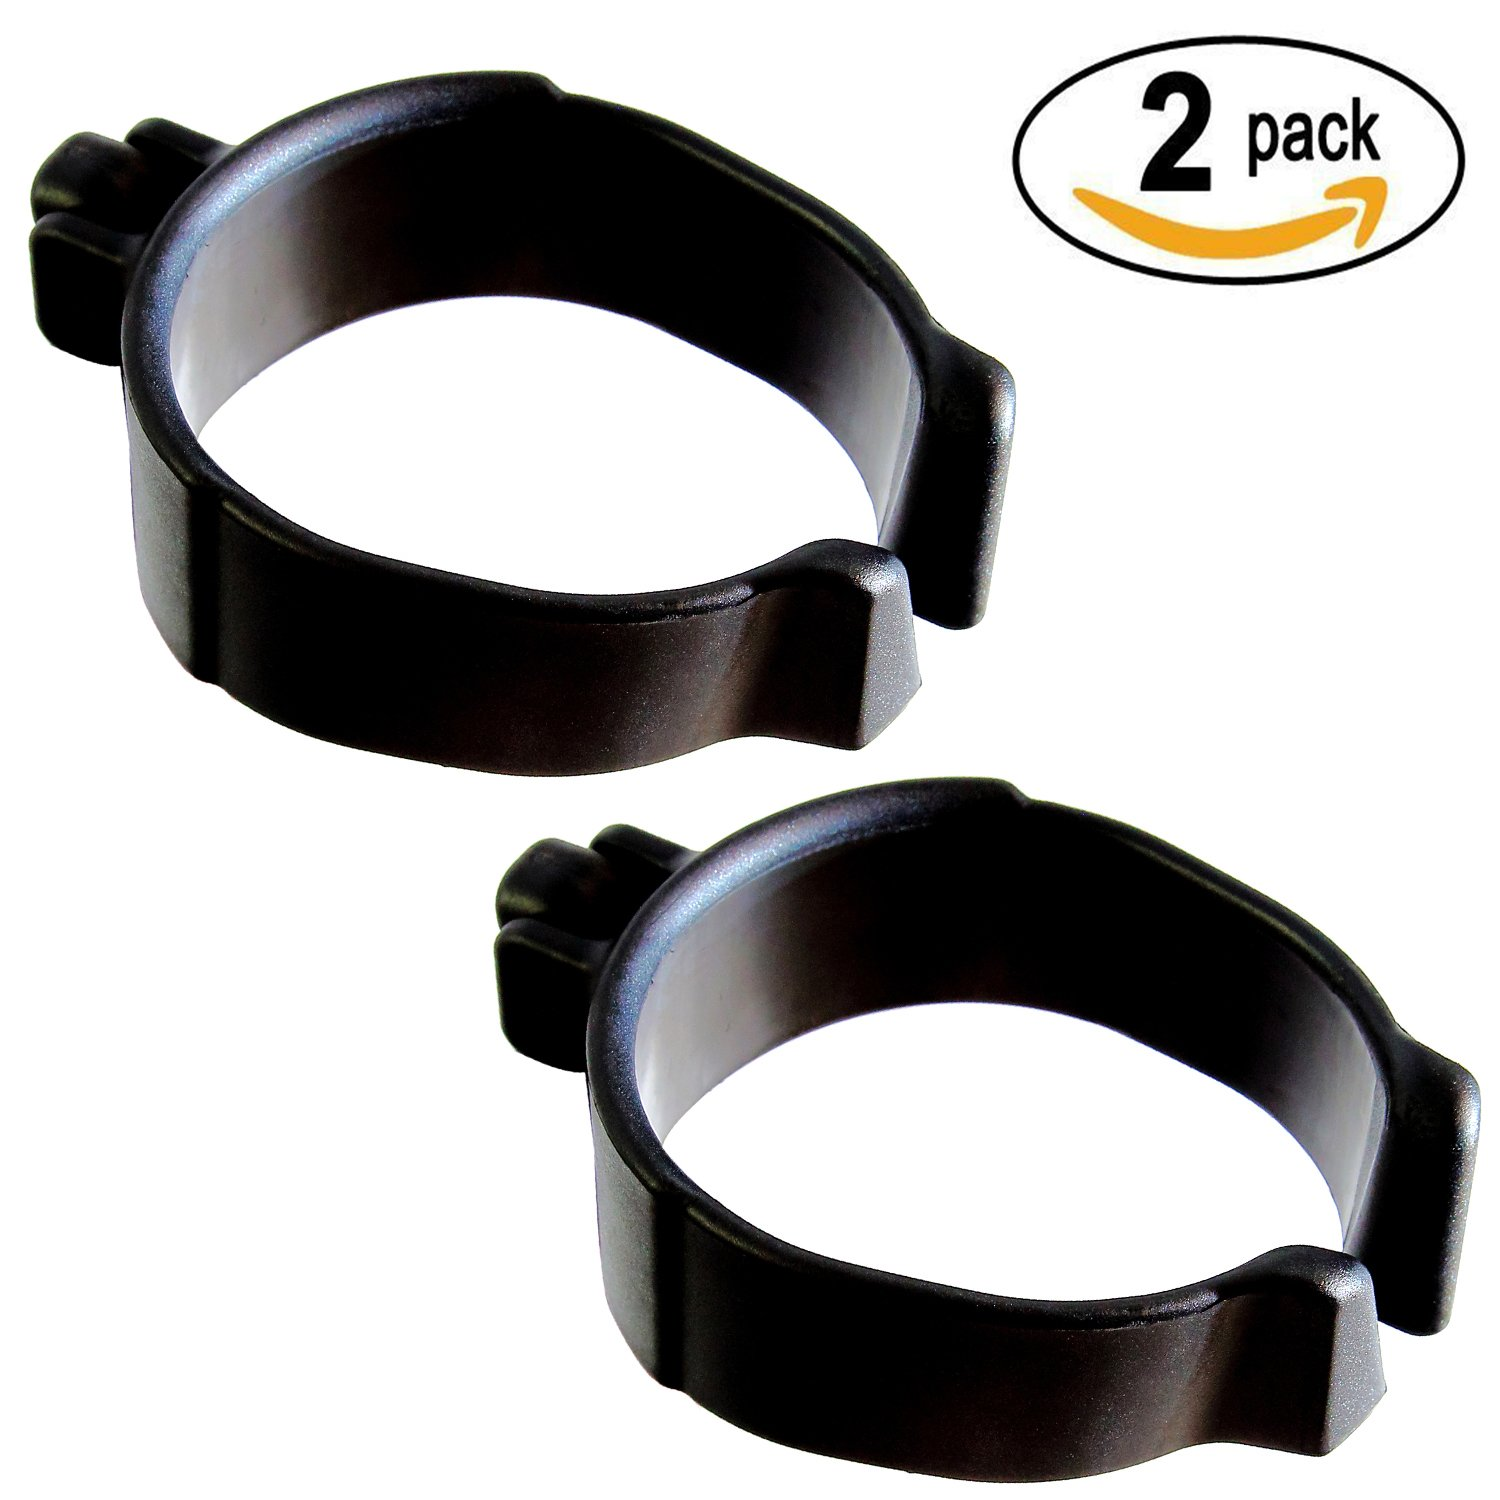 Millennial Medical In-Motion Forearm Cuff Black - size Large (4'') | Set of 2